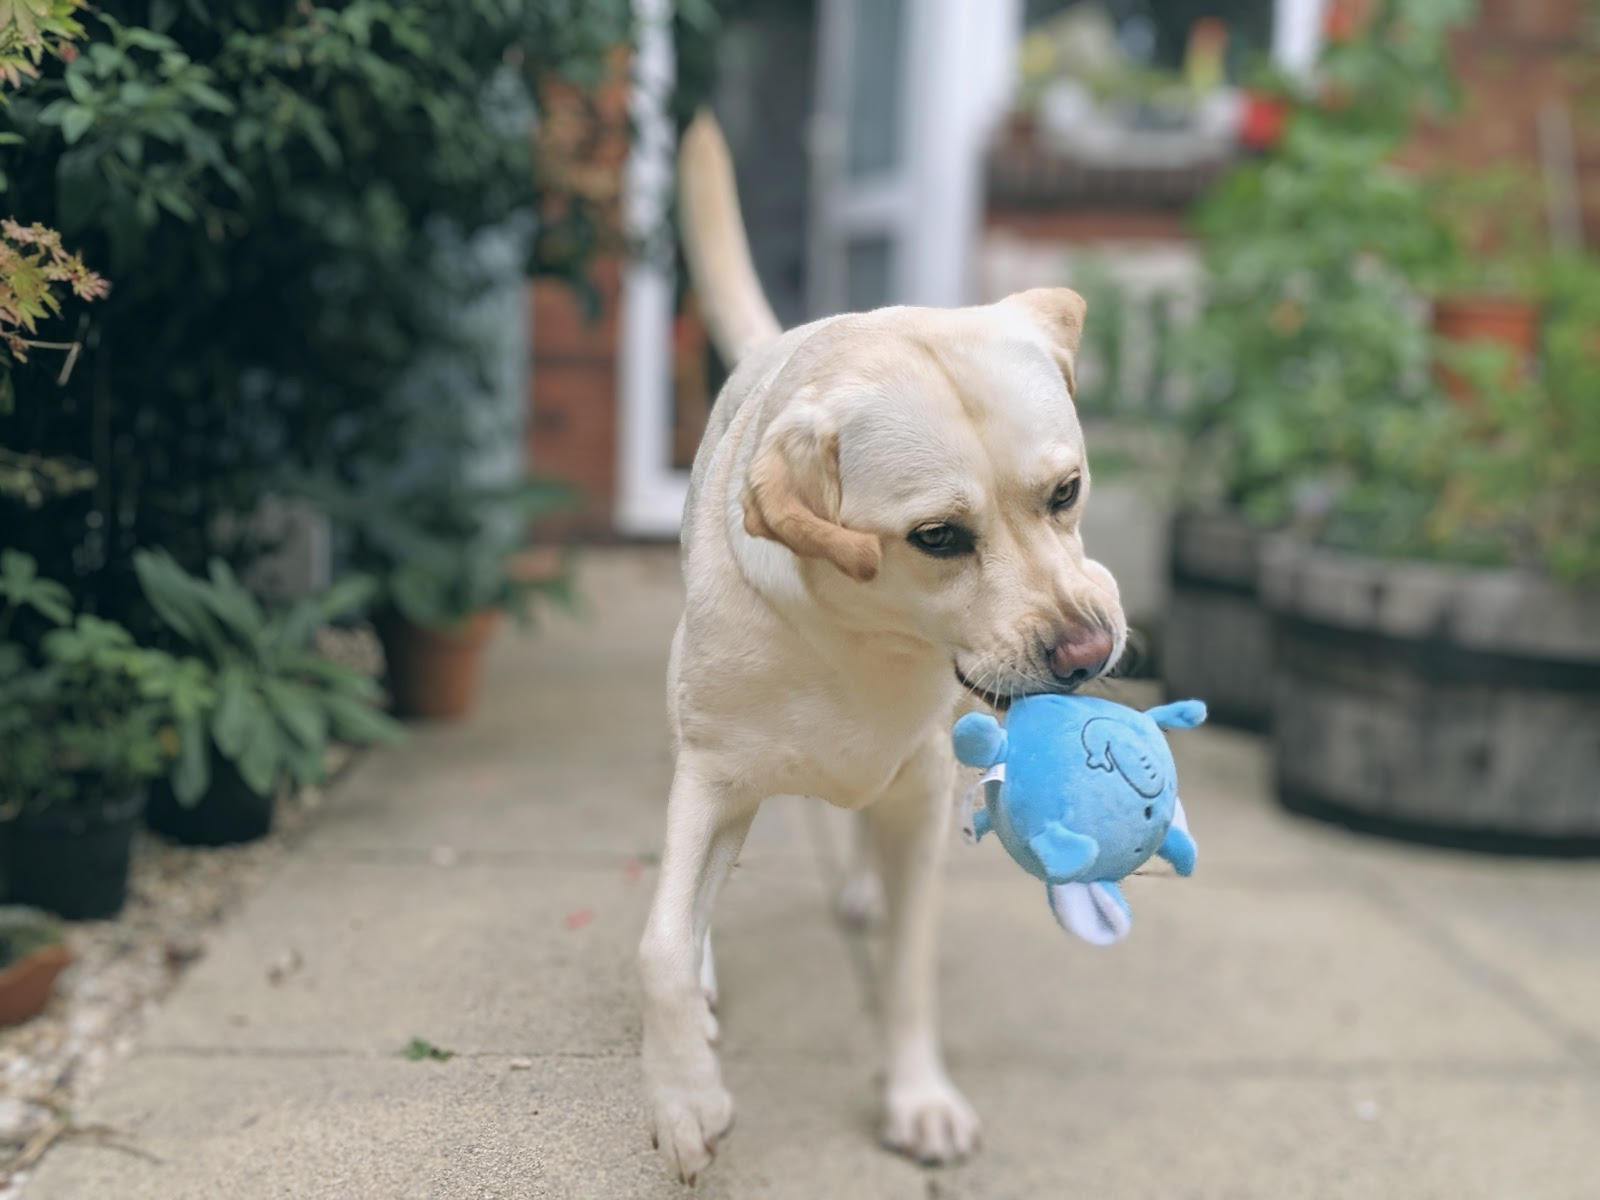 Scully the Labrador with blue elephant toy